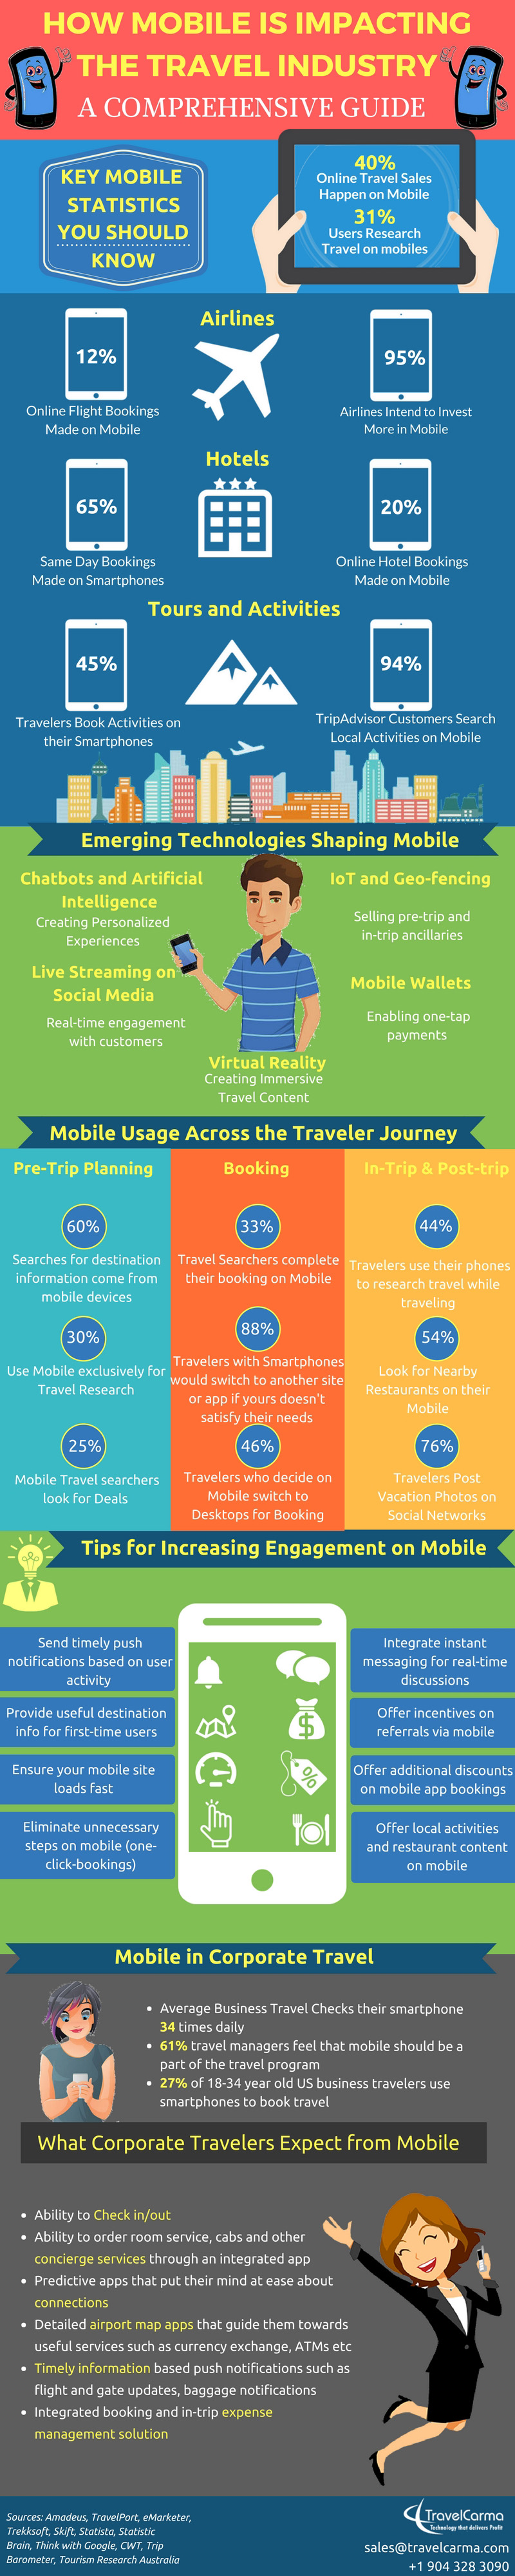 How Mobile is Impacting the Travel Industry: A Comprehensive Guide